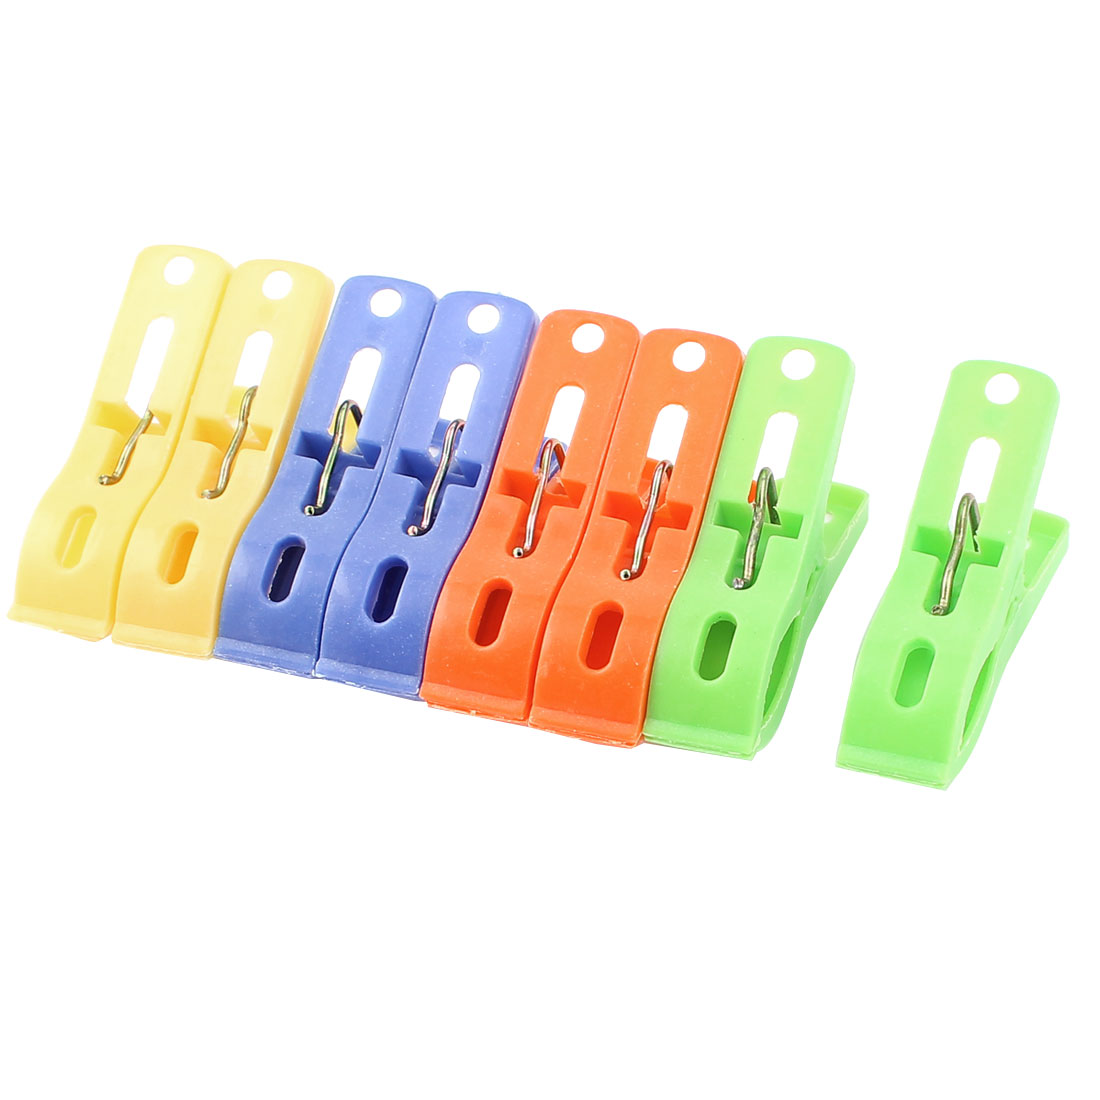 8 Pcs Household Plastic Nonslip Multipurpose Clothing Clothespins Clips Multicolour